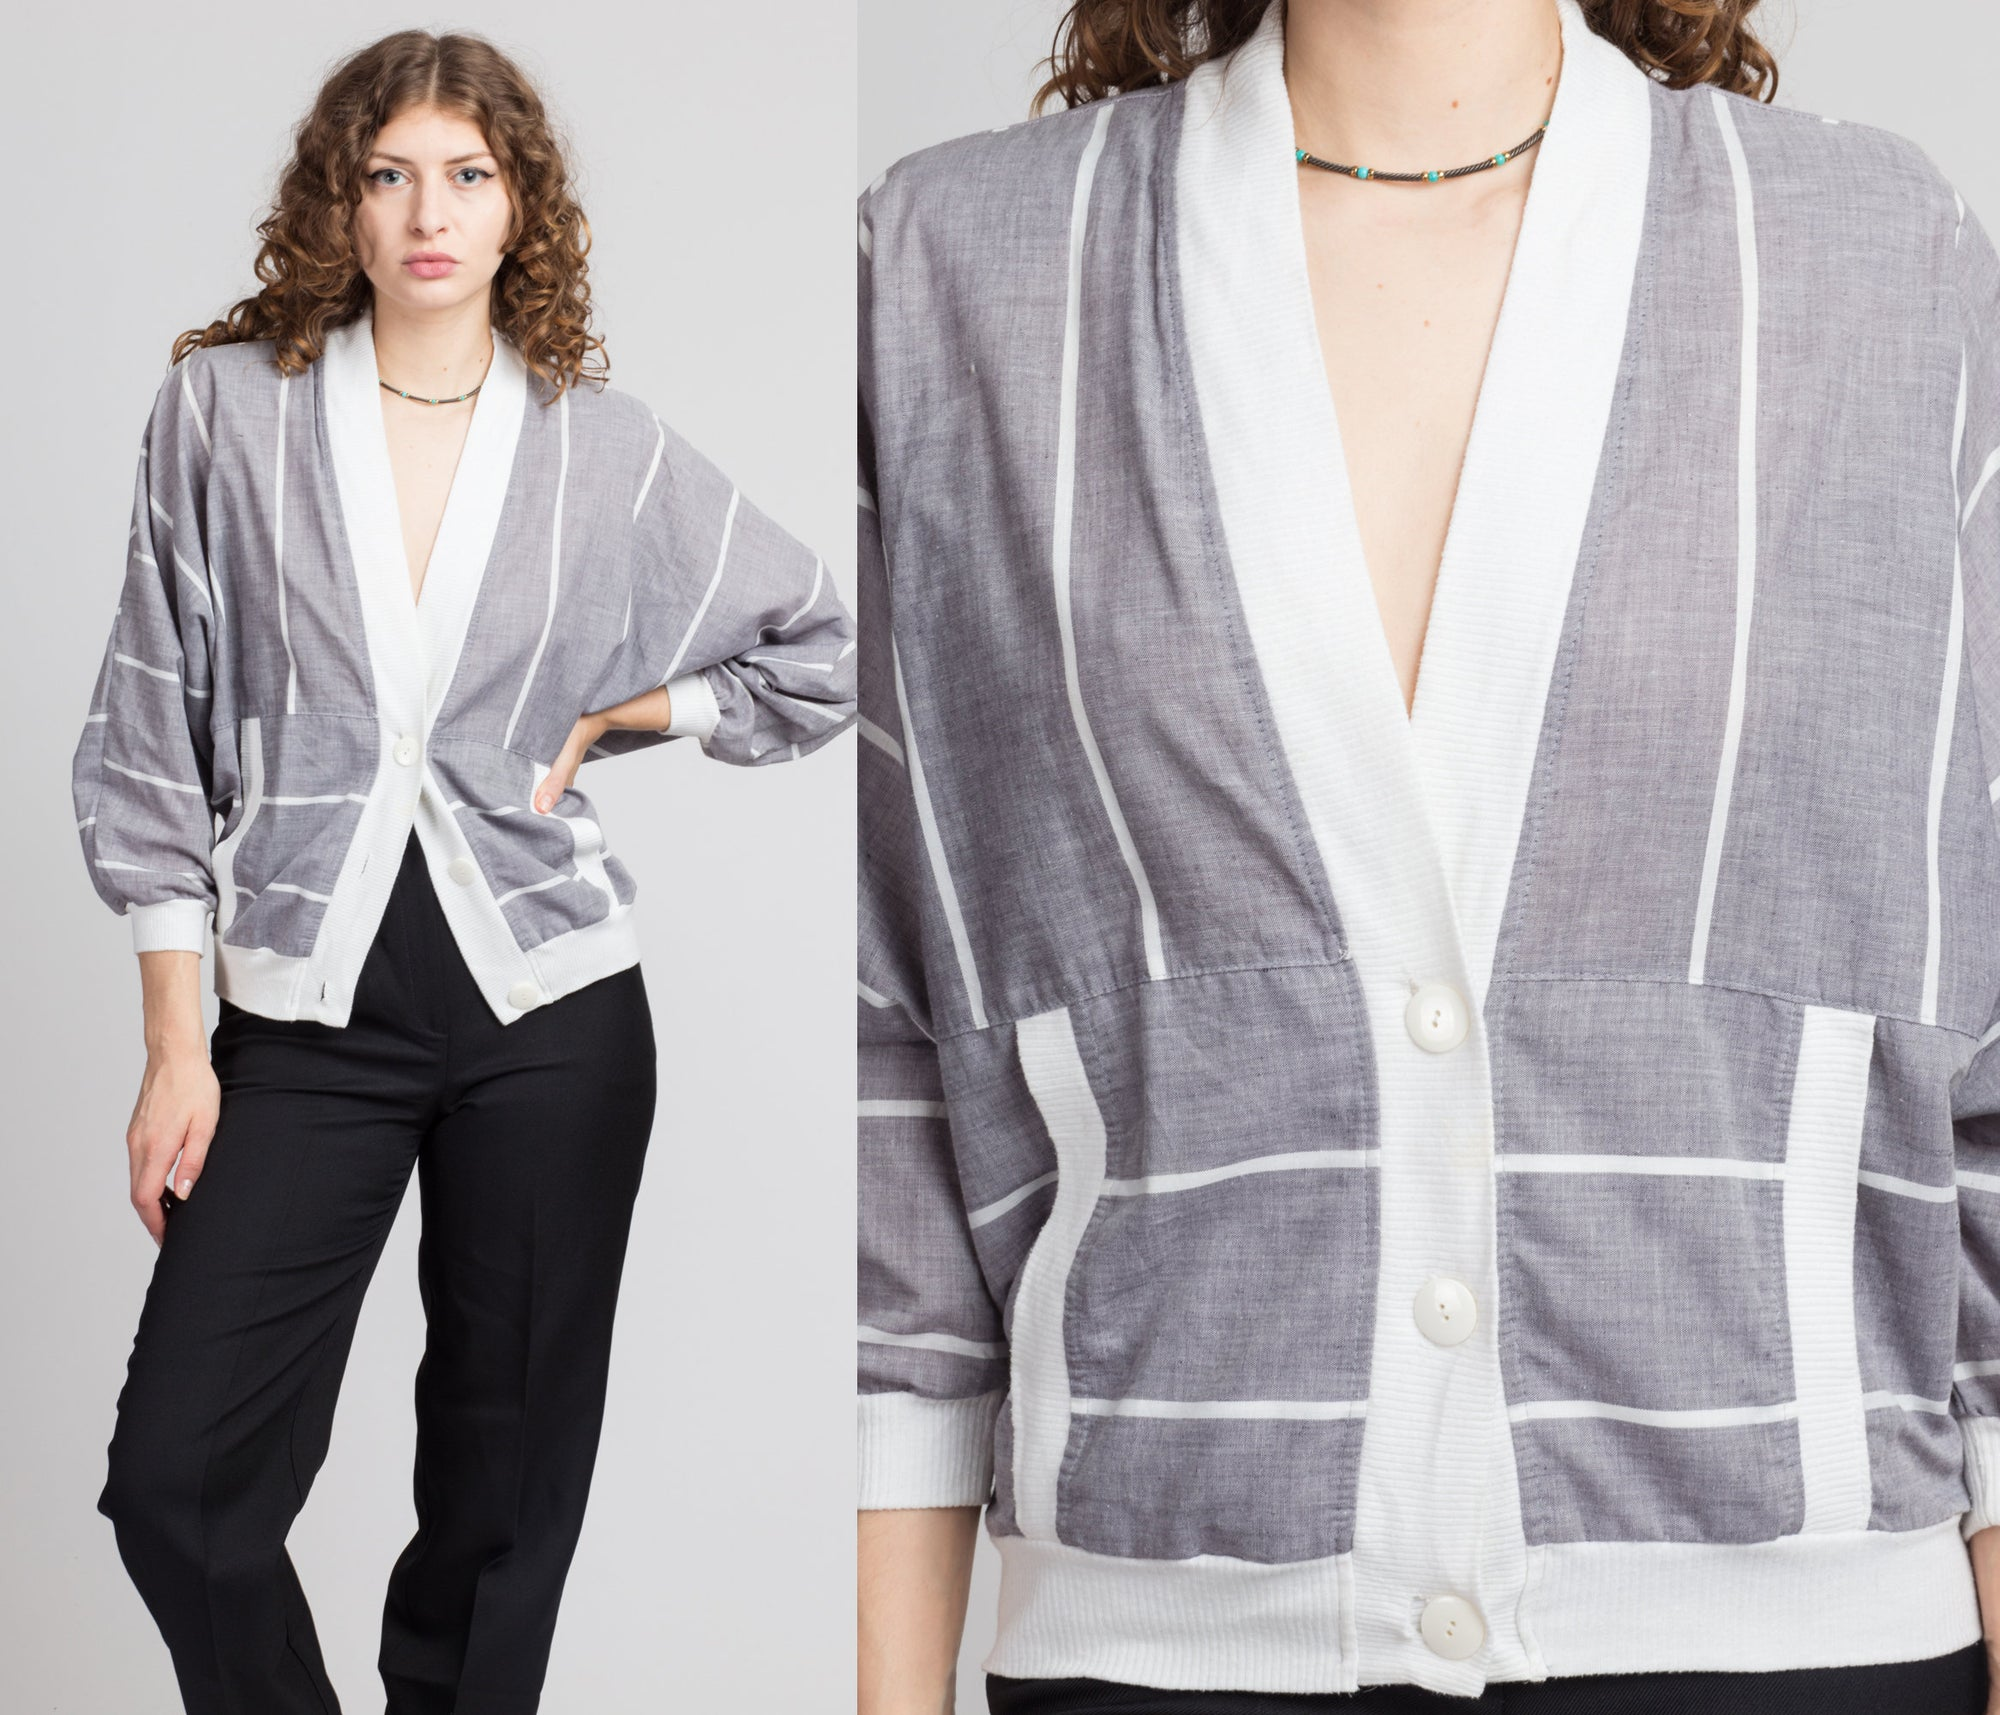 80s Gray & White Striped Lightweight Cardigan - Medium